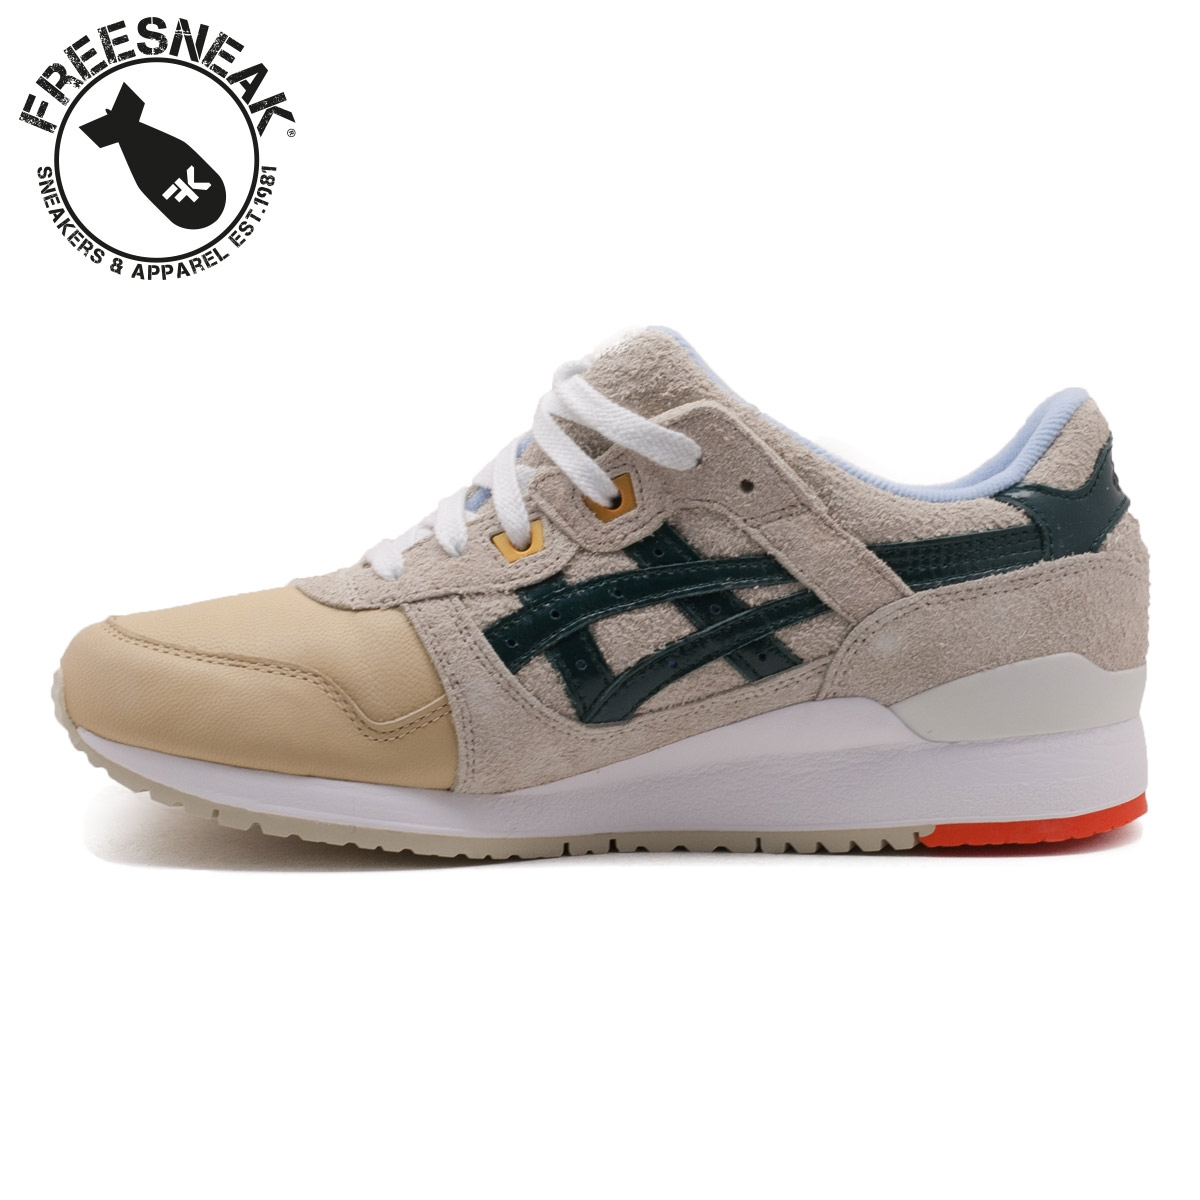 Sole What ASICS GEL Lyte III Christmas Pack. Available